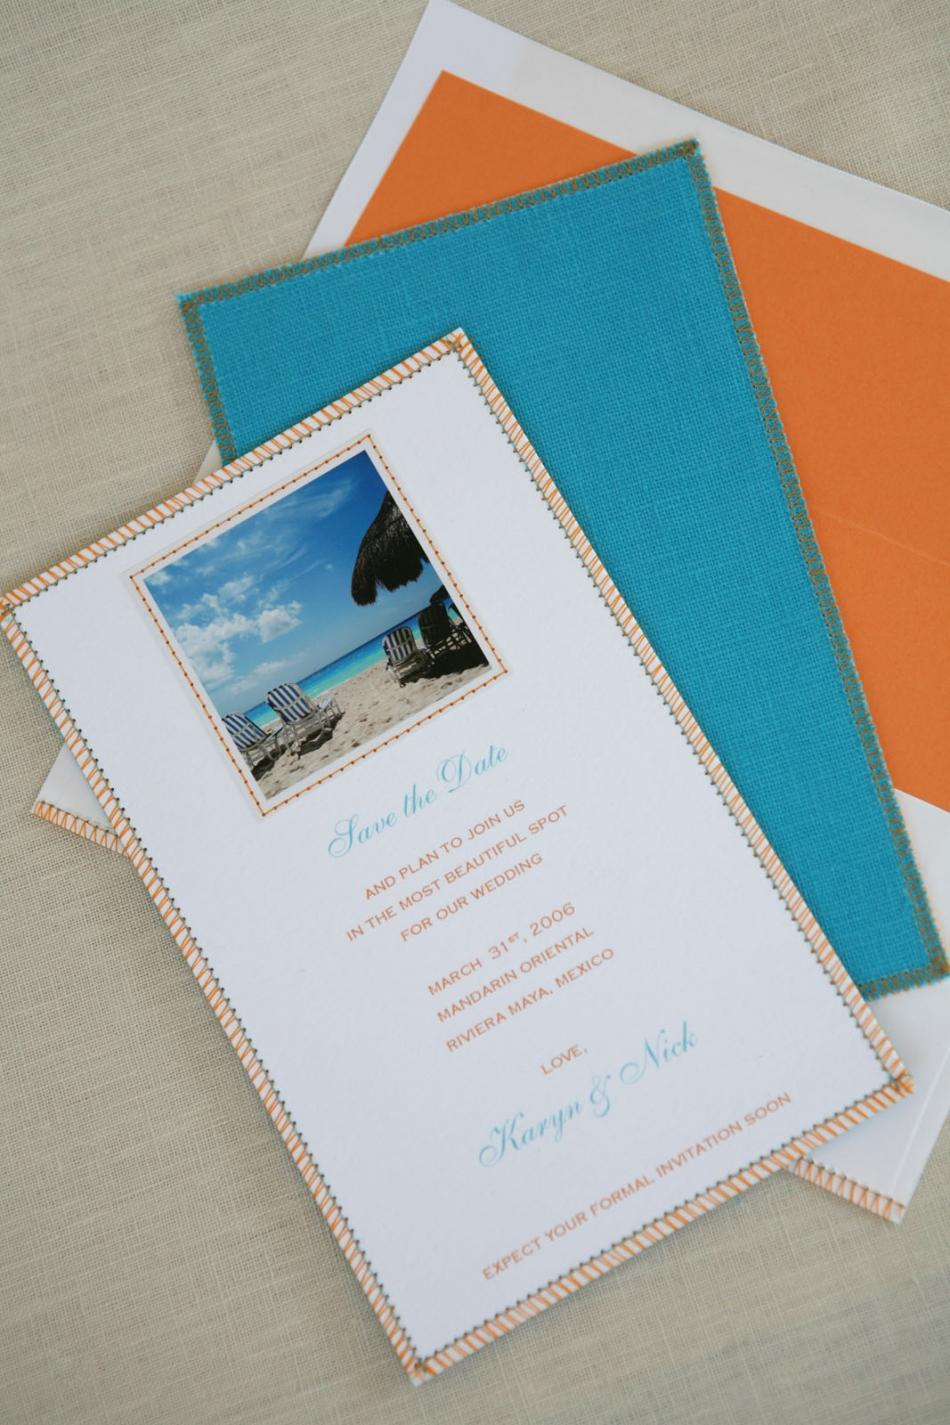 Proper-notice-destination-wedding-invitation-stationery-trends-white-orange-aqua-teal-photo.full